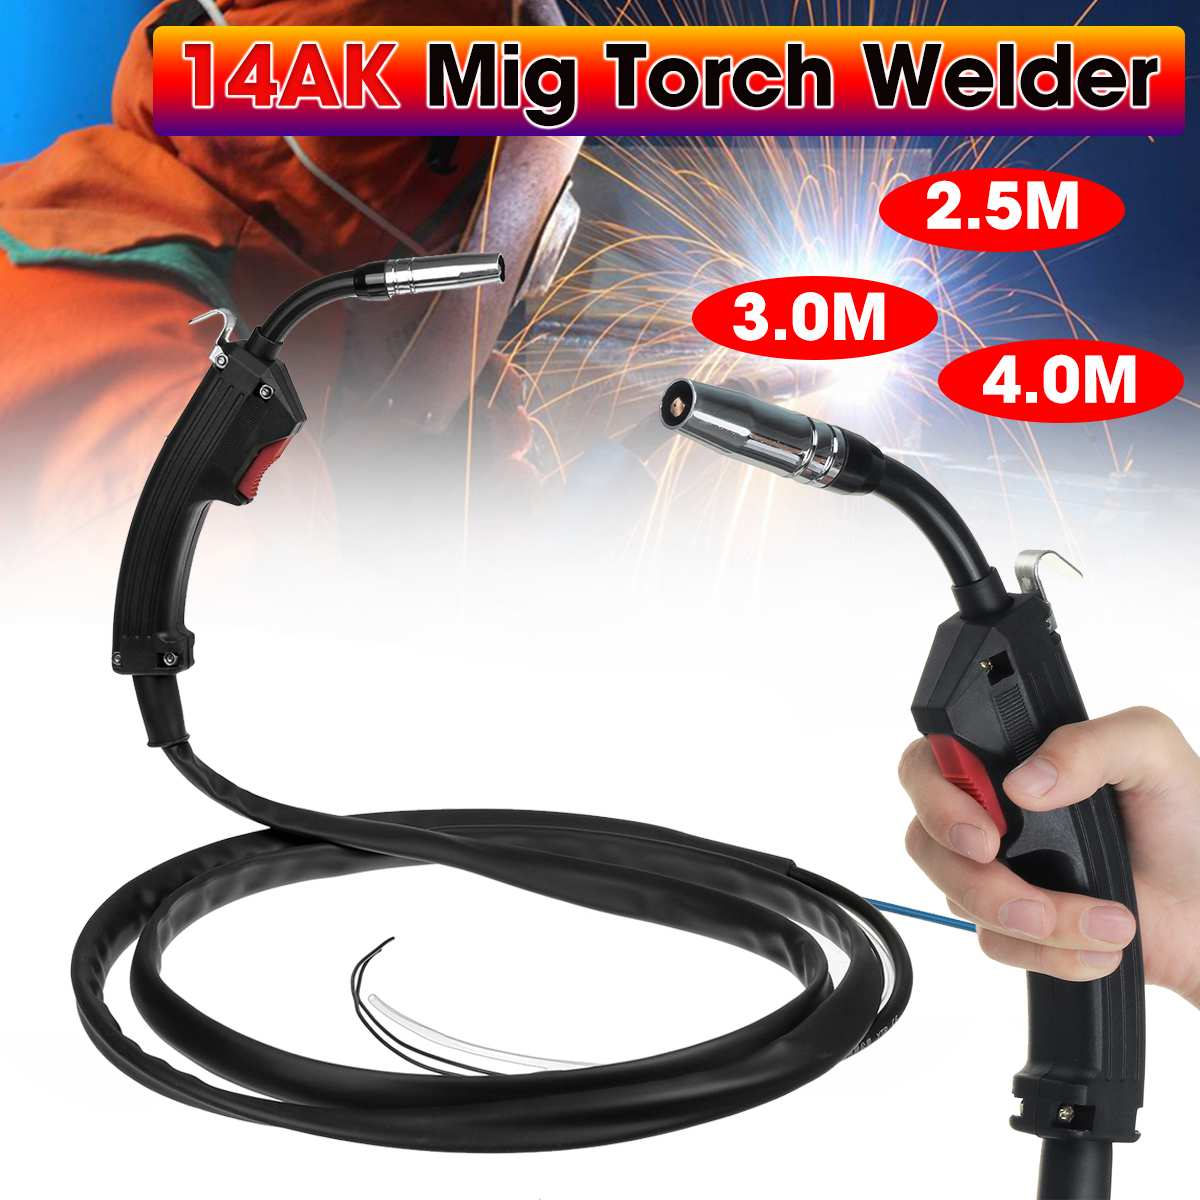 New 2 5M 3M 4M 14AK Gas-electric Welding Guns Torch Electric Welder Complete Replacement Spare Part For MIG MAG Welding Machine